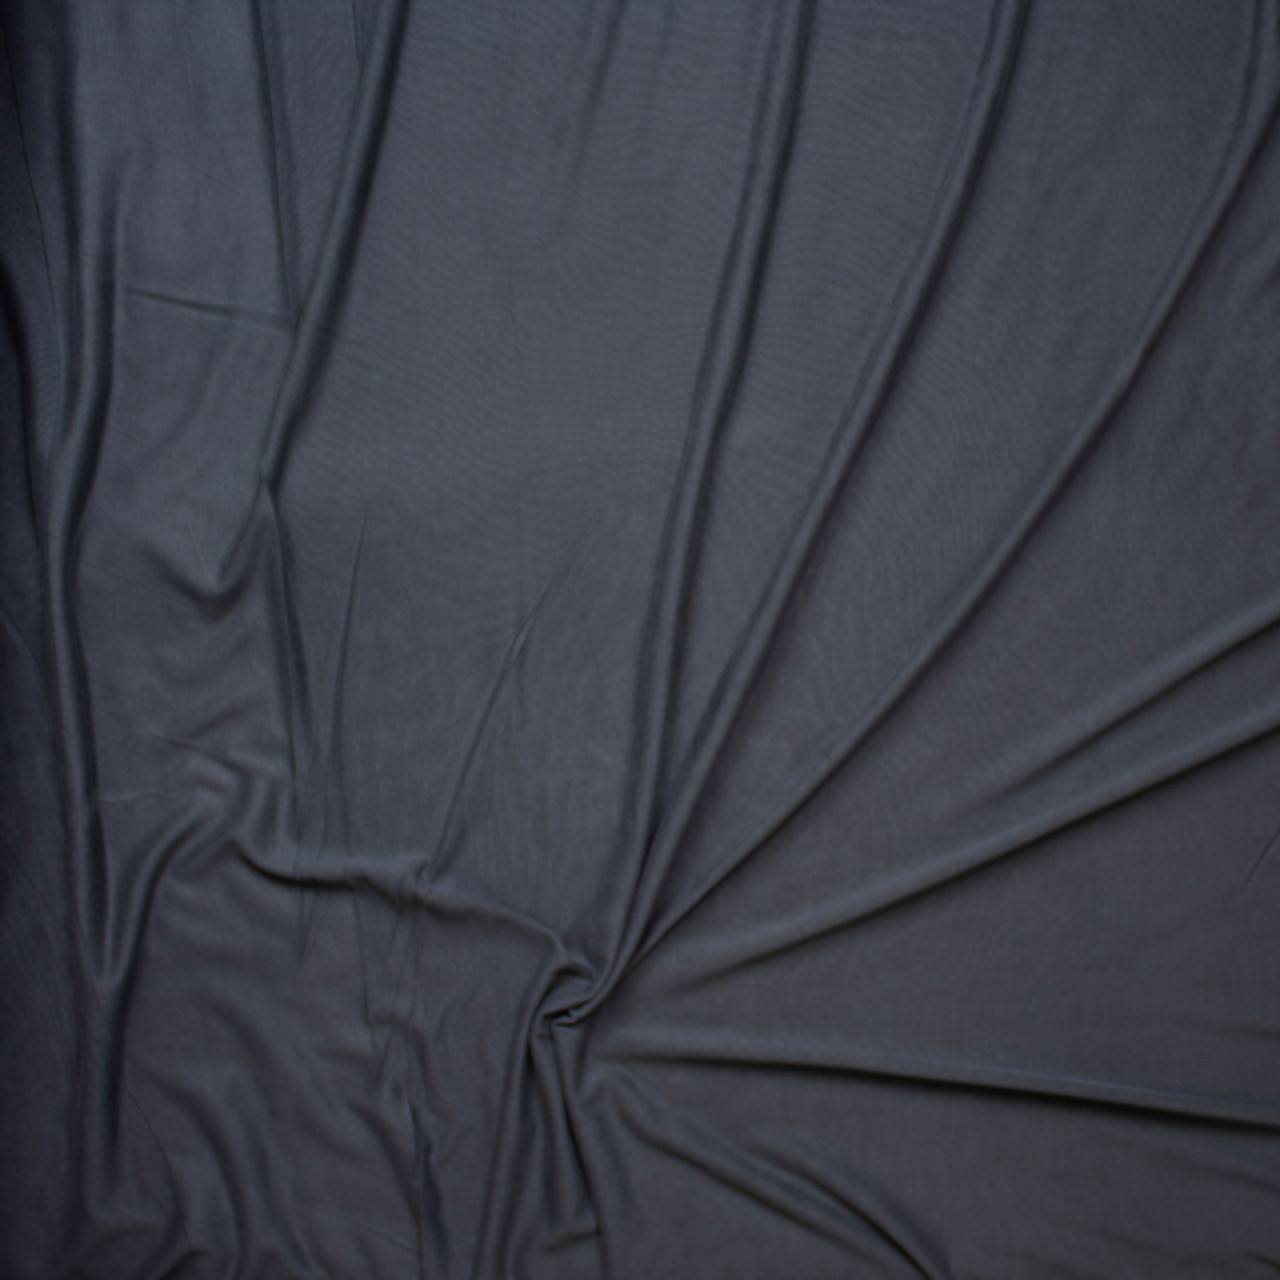 d4a2b05649c ... Charcoal Brushed Poly/Modal Jersey Knit Fabric By The Yard - Wide shot